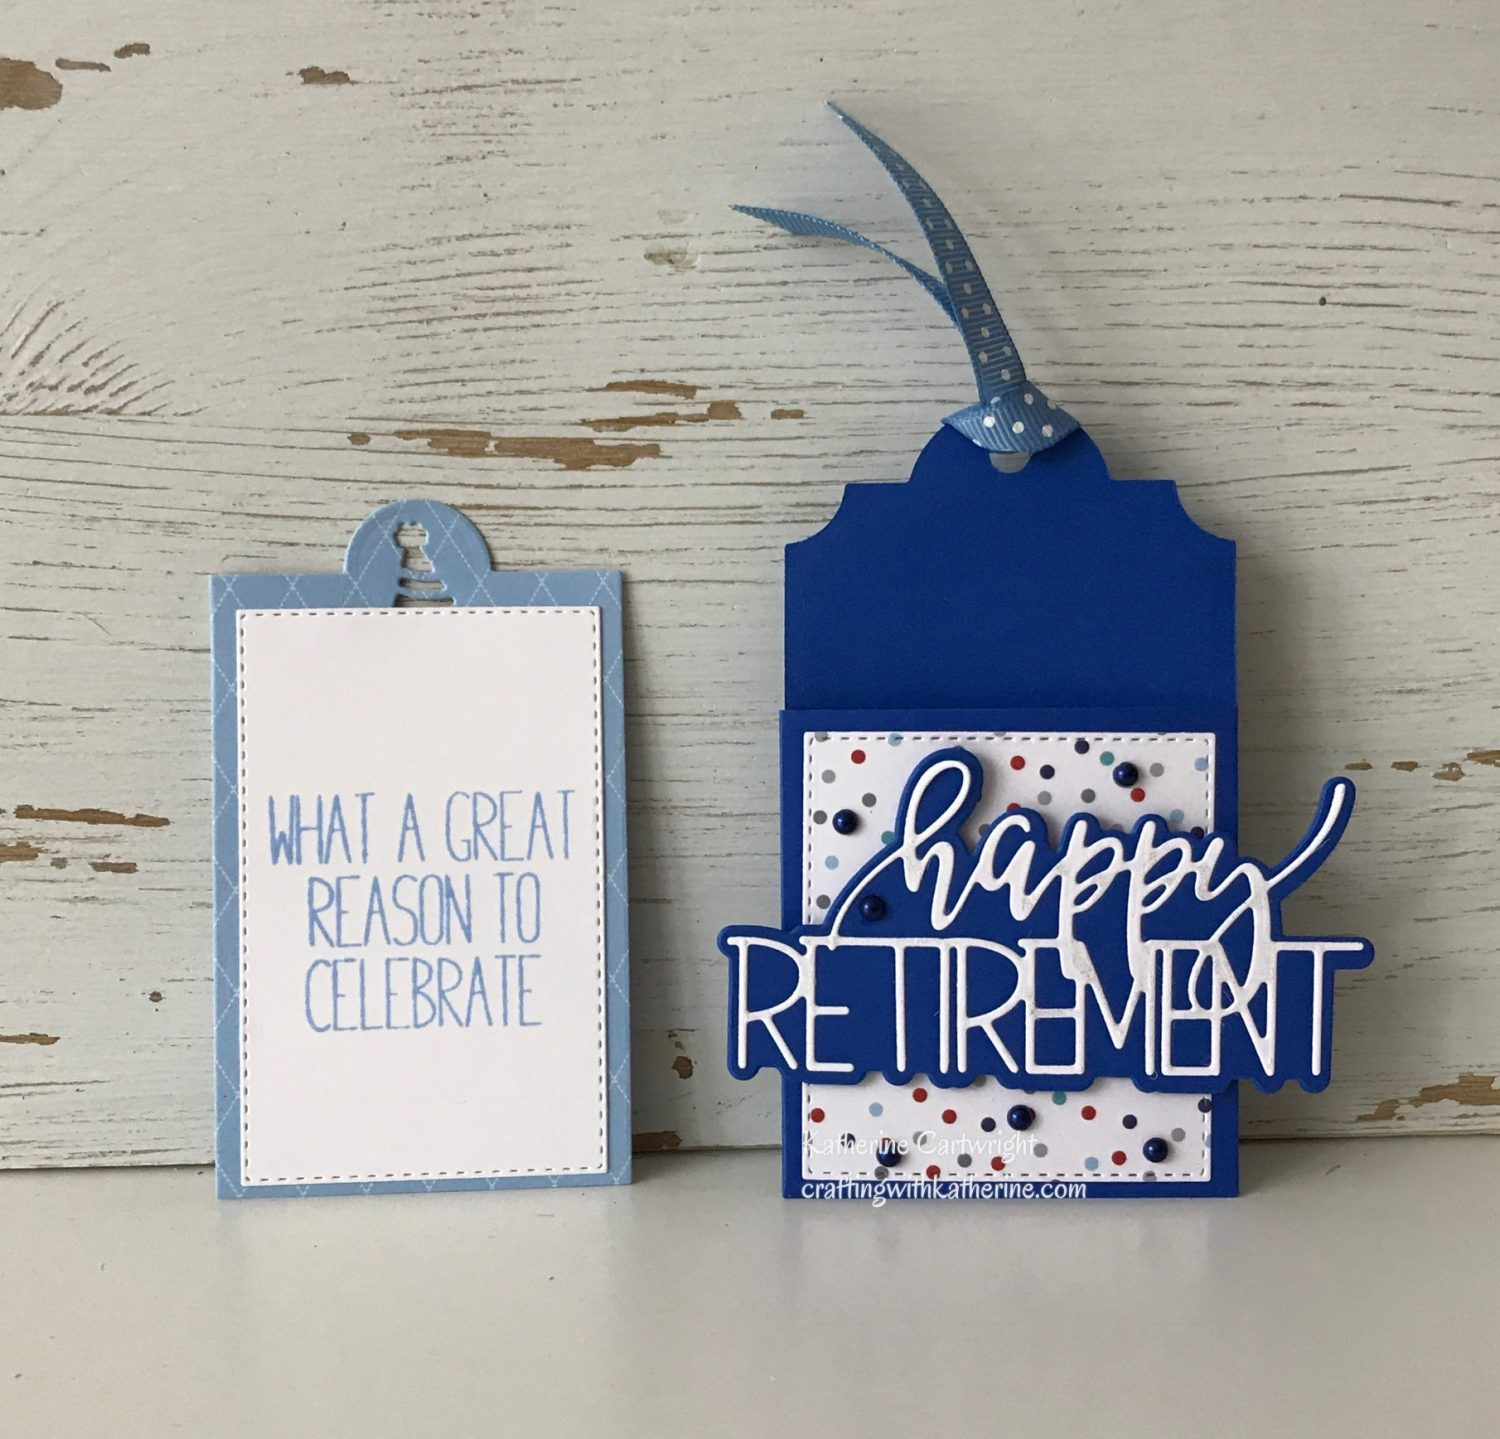 Handmade Happy Retirement Tag